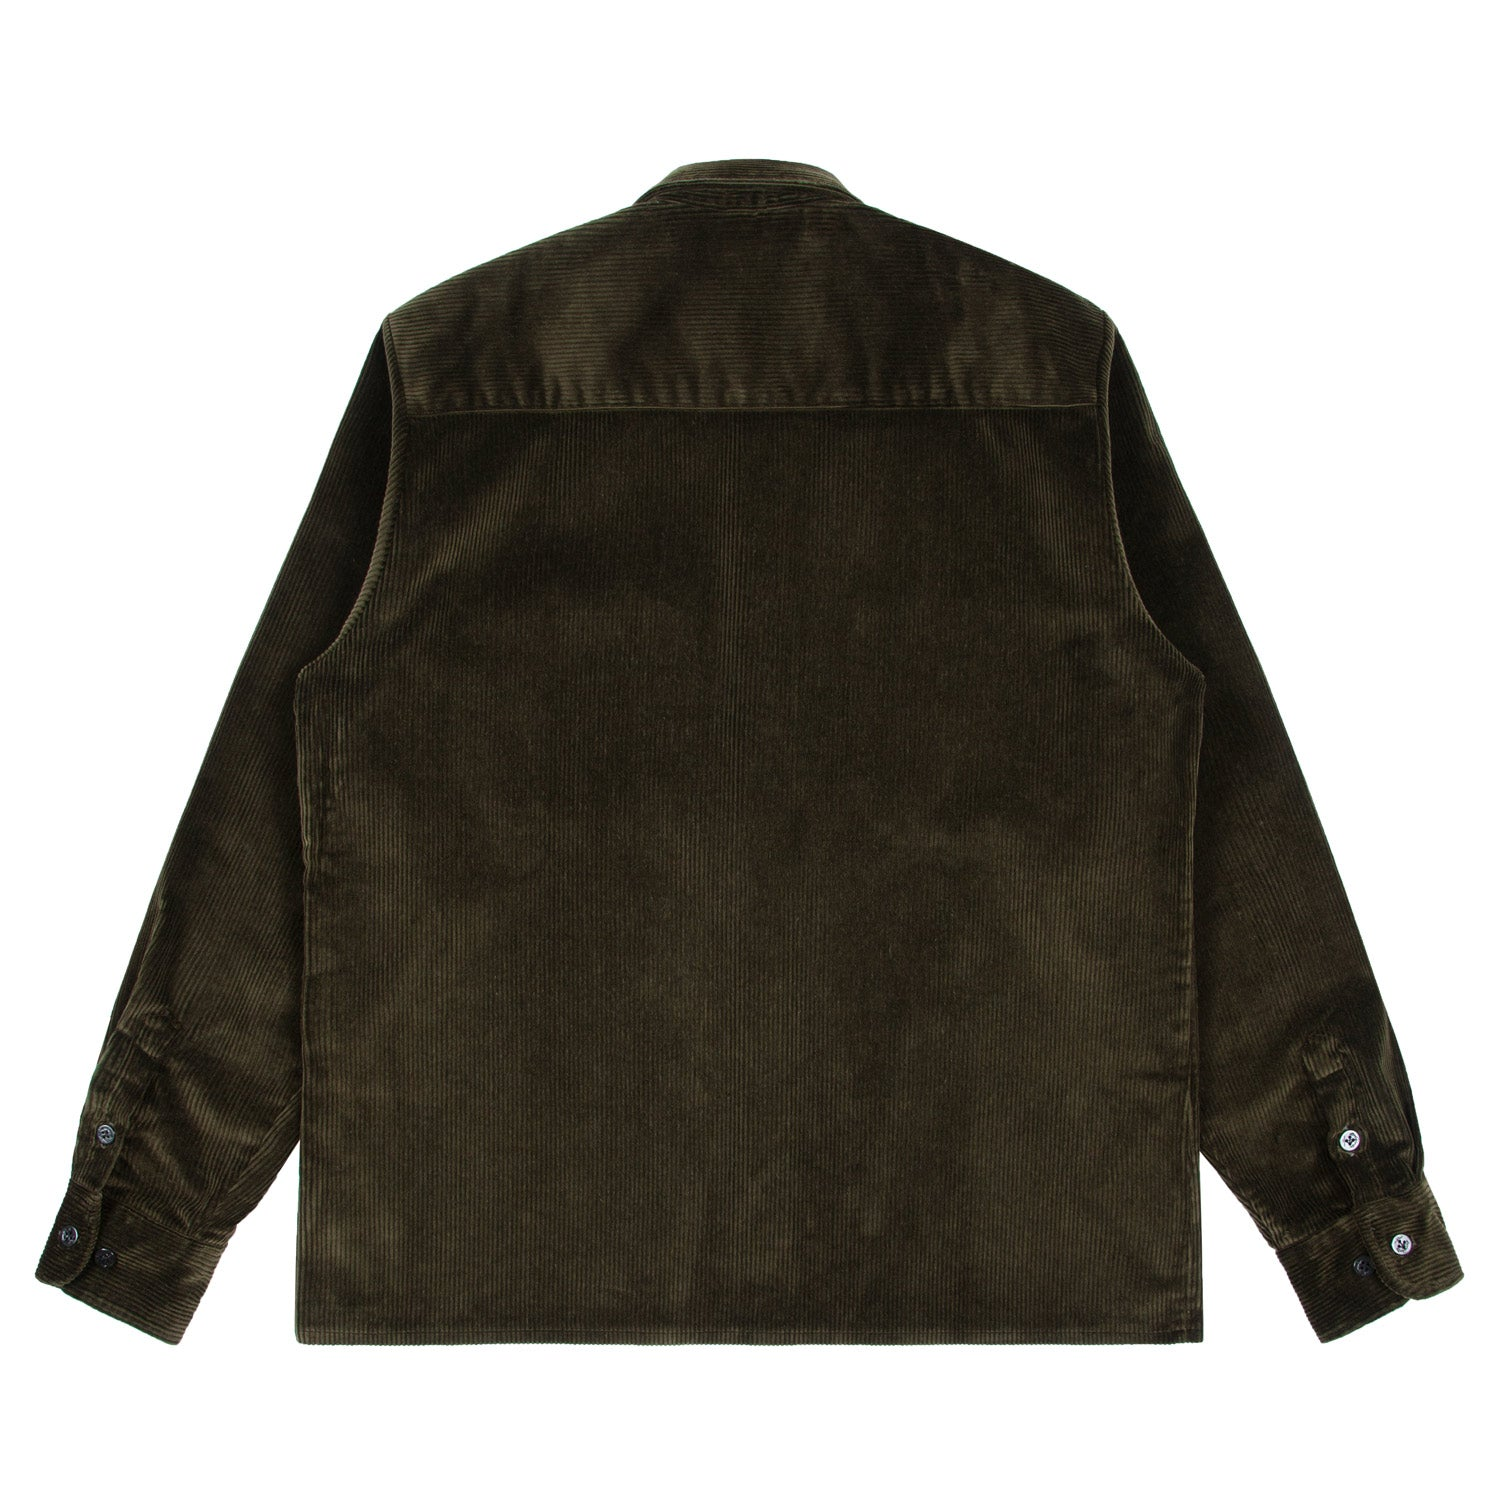 Heavy Duty Corduroy Shirt Jacket